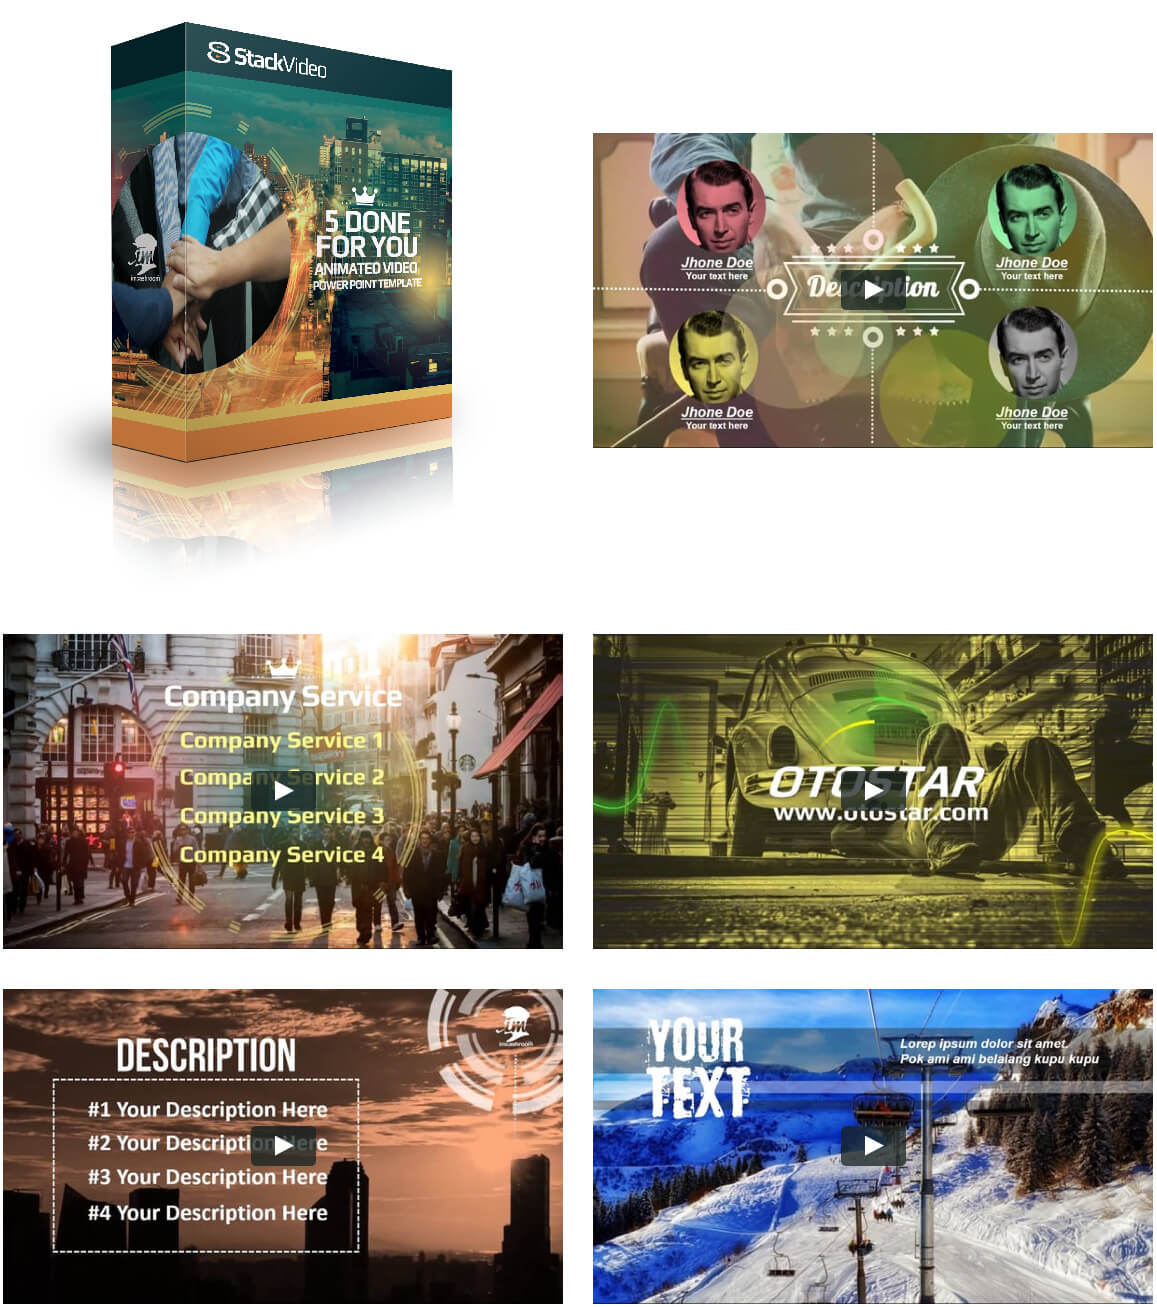 StackVideo 5 Done for Your Animated Video Powerful Template